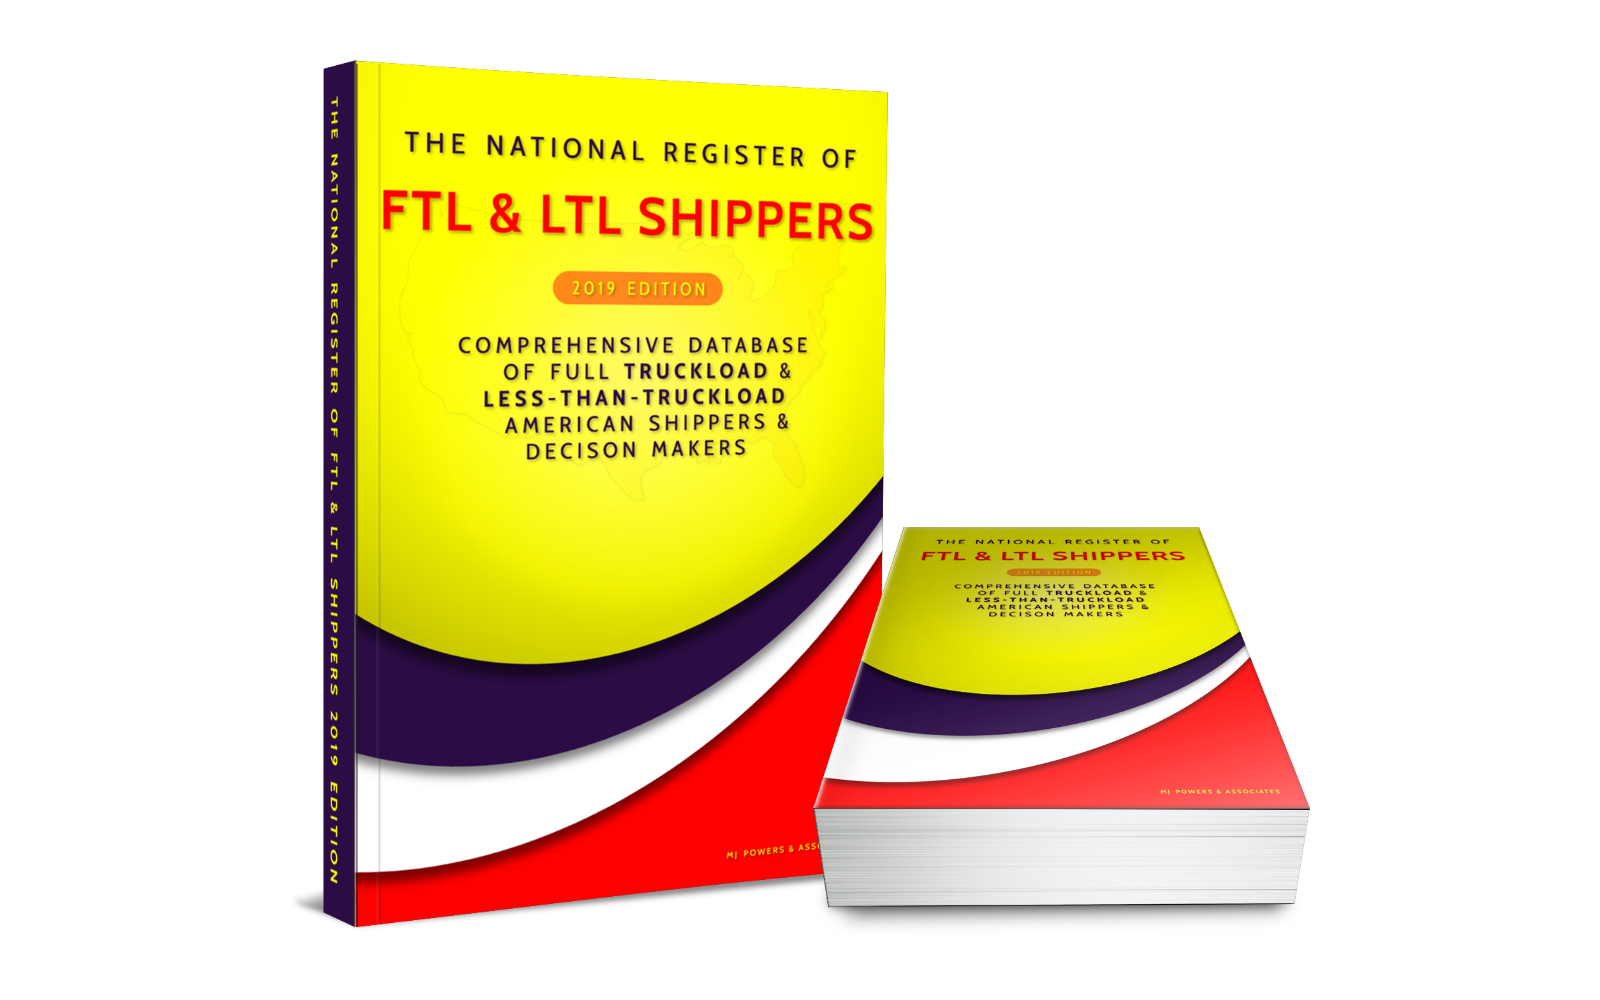 The National Register of FTL & LTL Shippers, 2019 Edition®